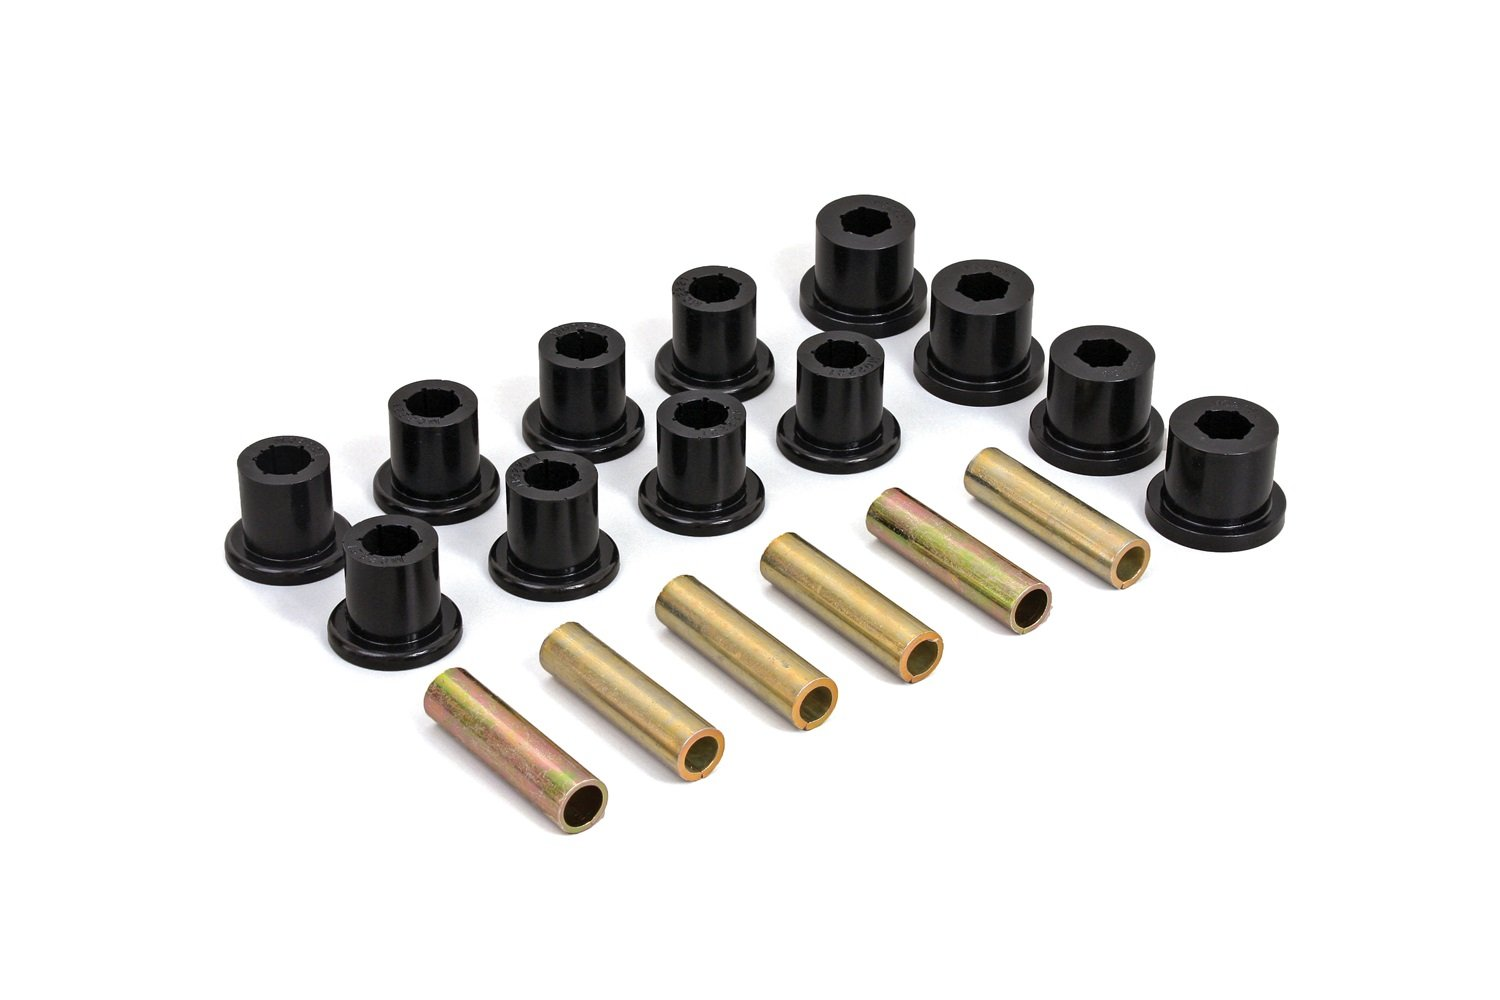 Daystar, Jeep XJ Cherokee Polyurethane Spring Shackle Bushings Rear, fits Comanche and Cherokee 1984 to 2001 2/4WD, KJ02008BK, Made in America